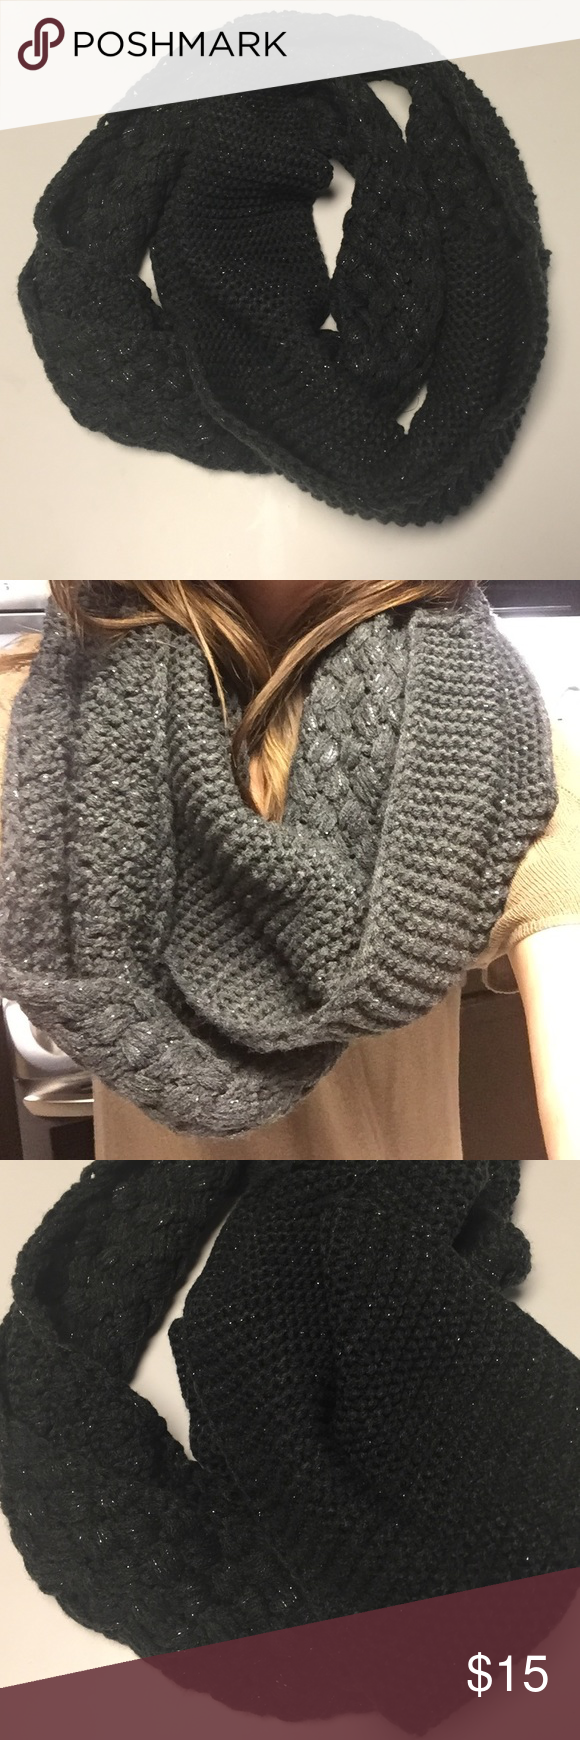 Charcoal grey Infiniti scarf Bought from Target. Good condition. About 8inches thick. Accessories Scarves & Wraps